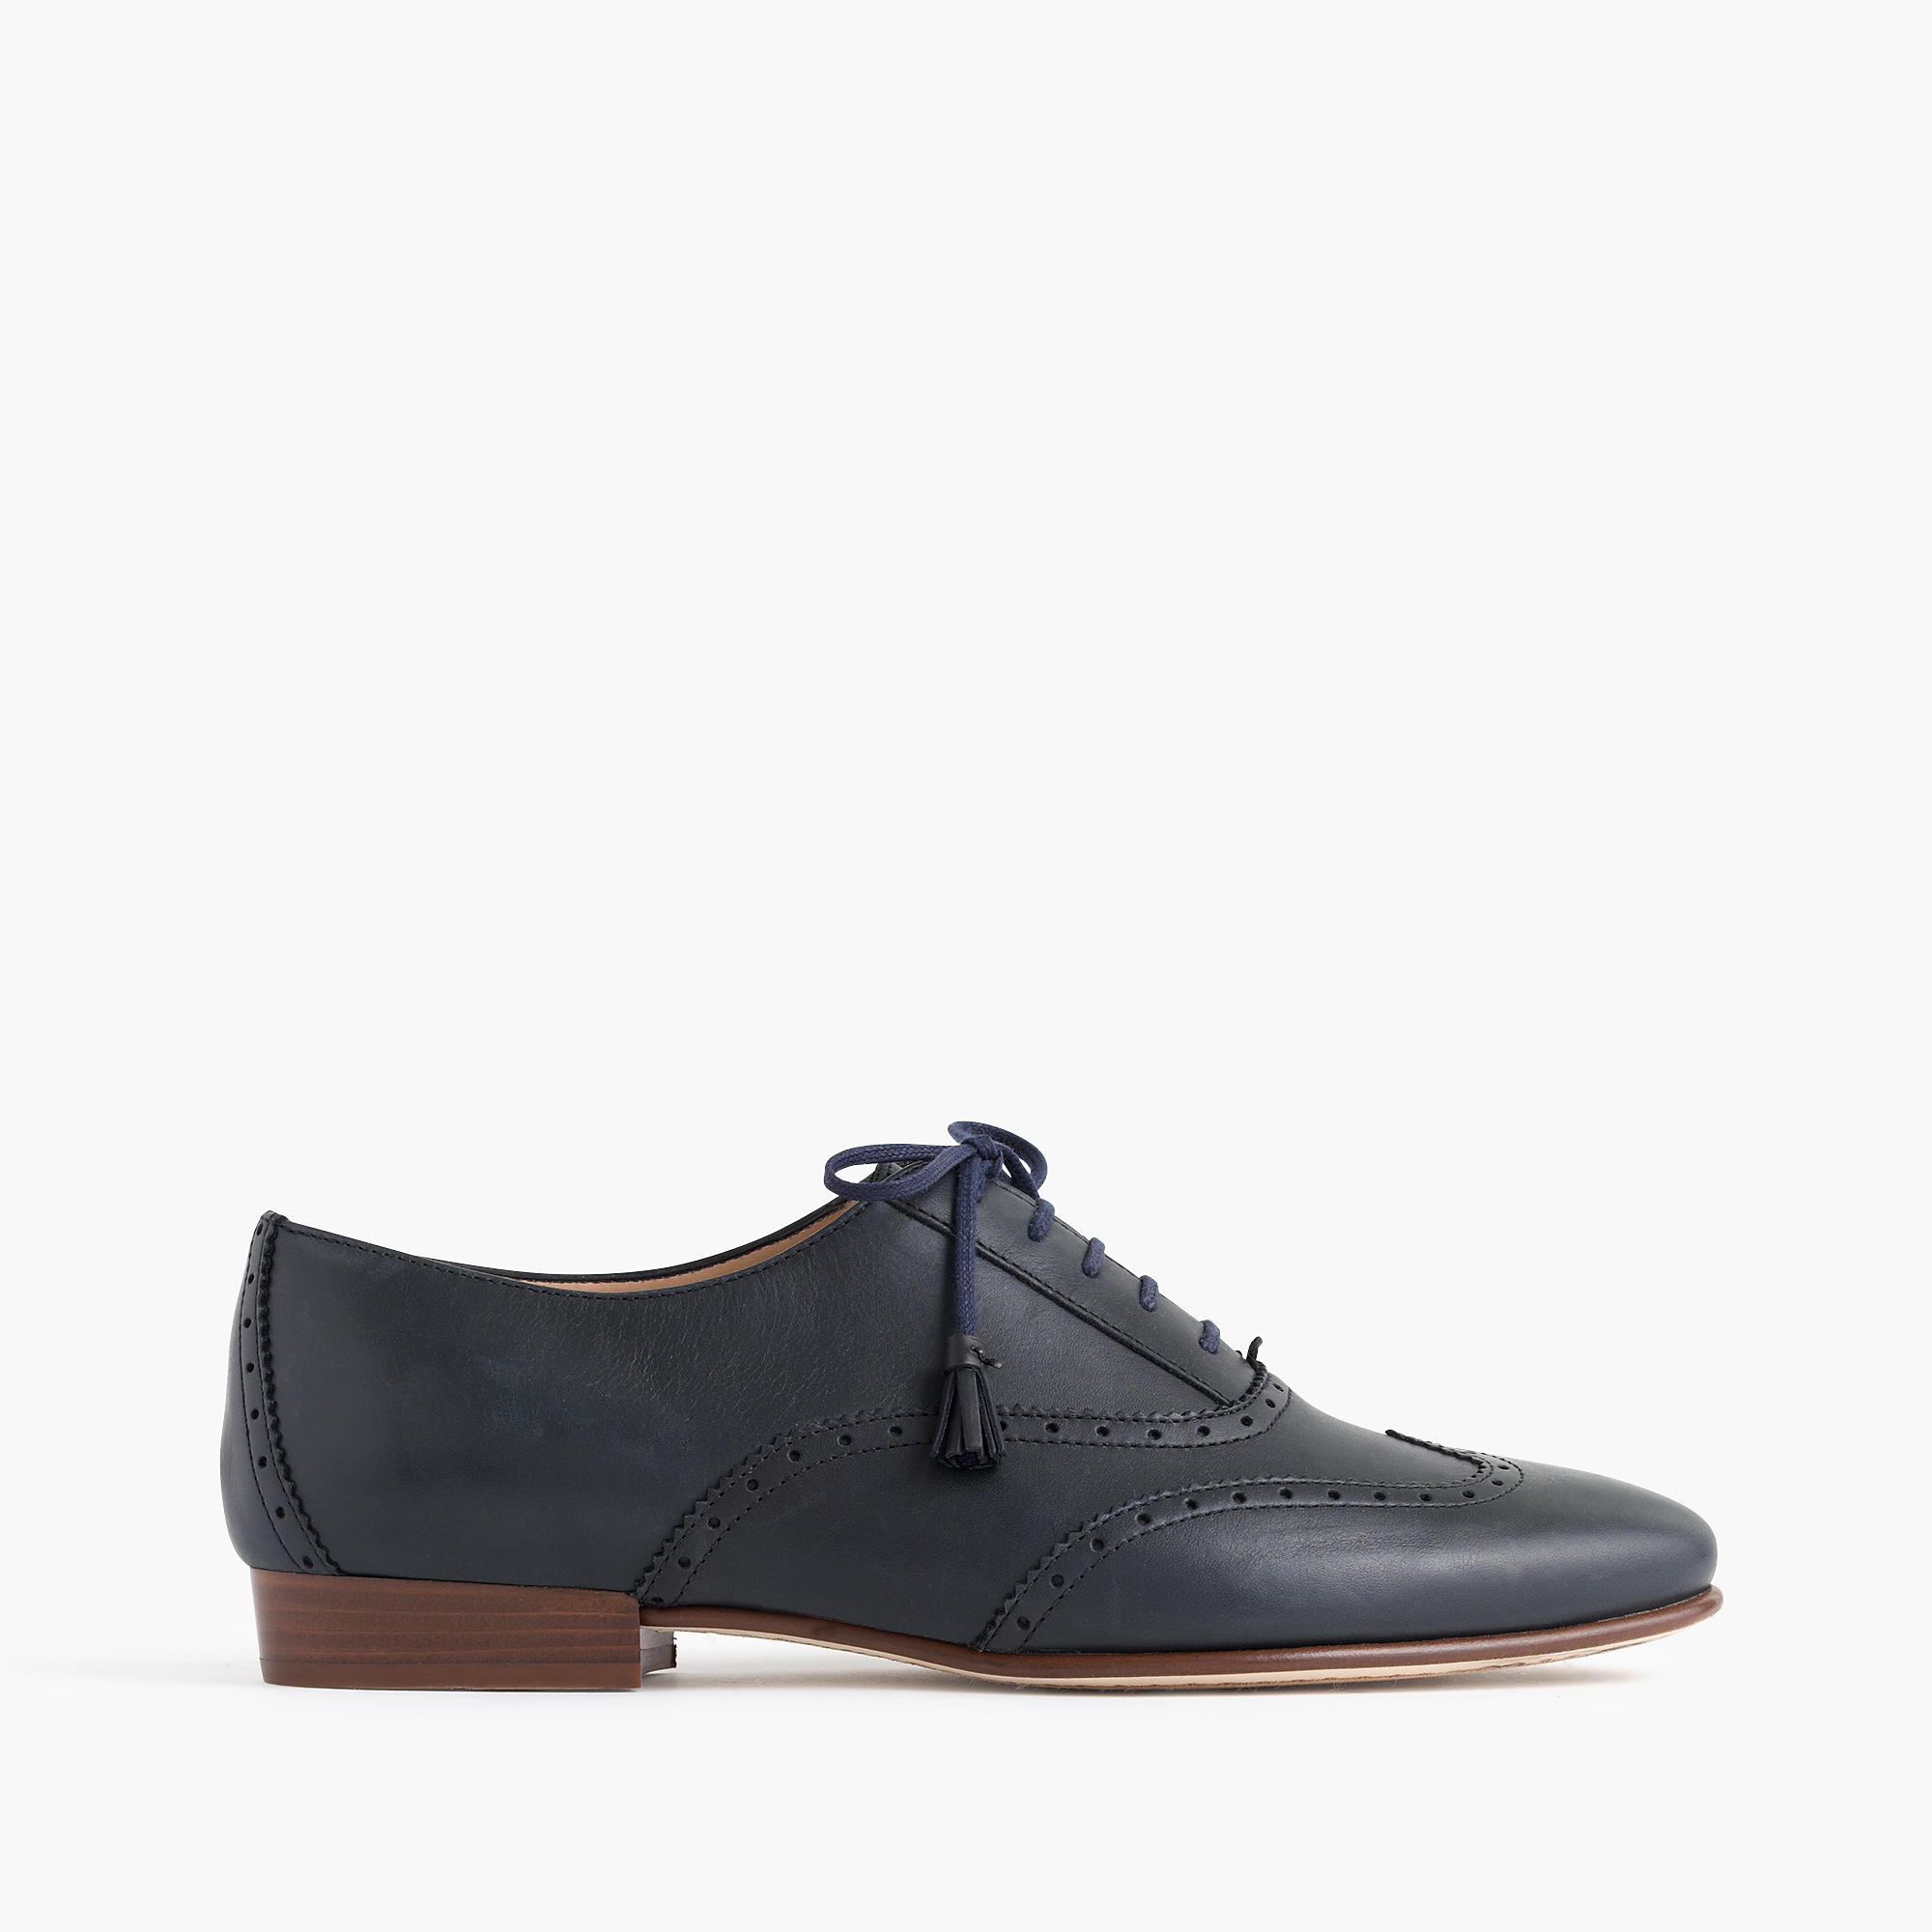 Where To Find Oxford Shoes For Women